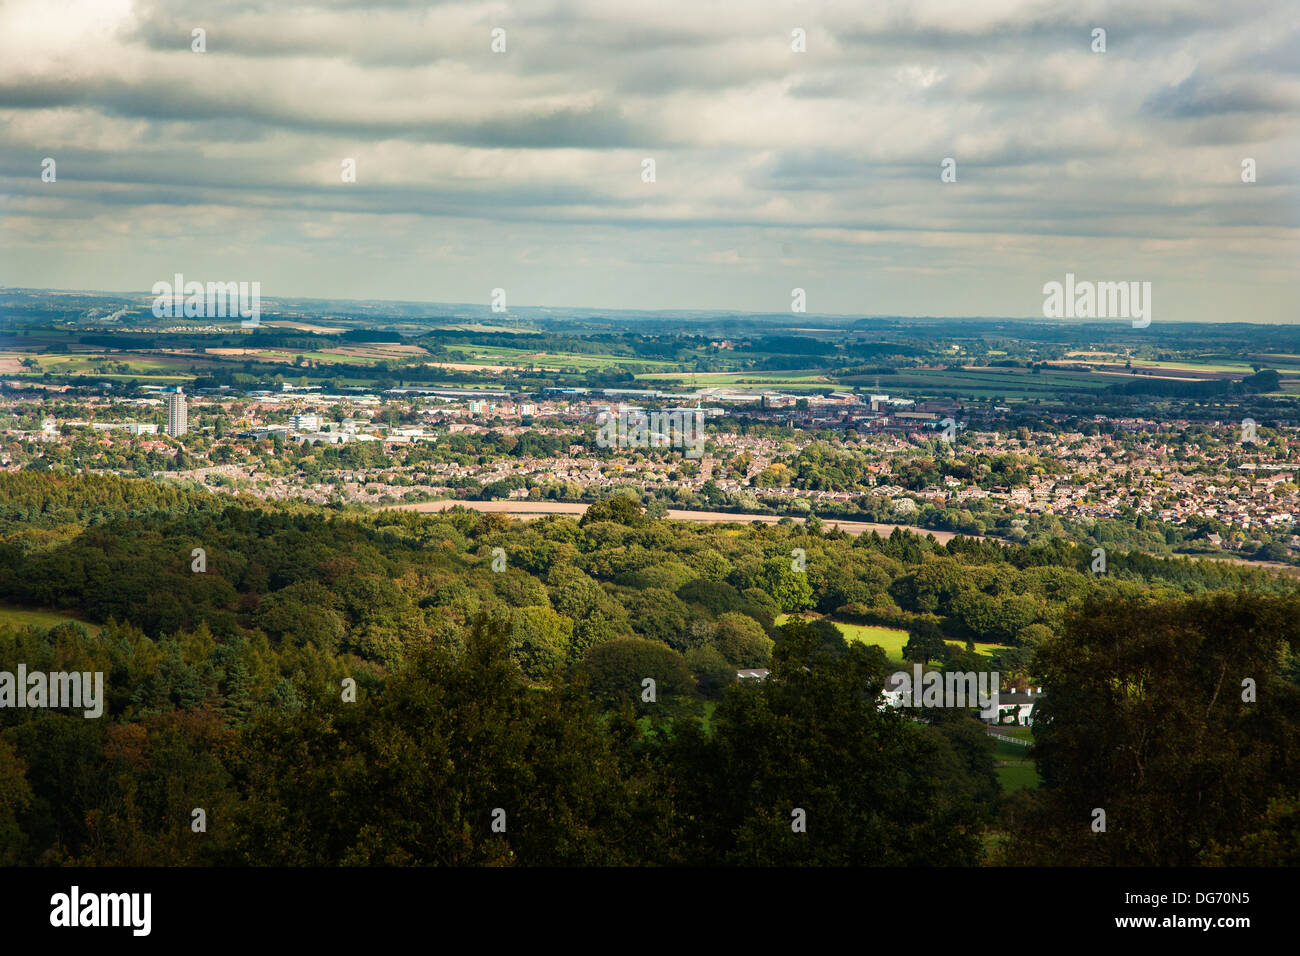 View over Loughborough Leicestershire UK - Stock Image